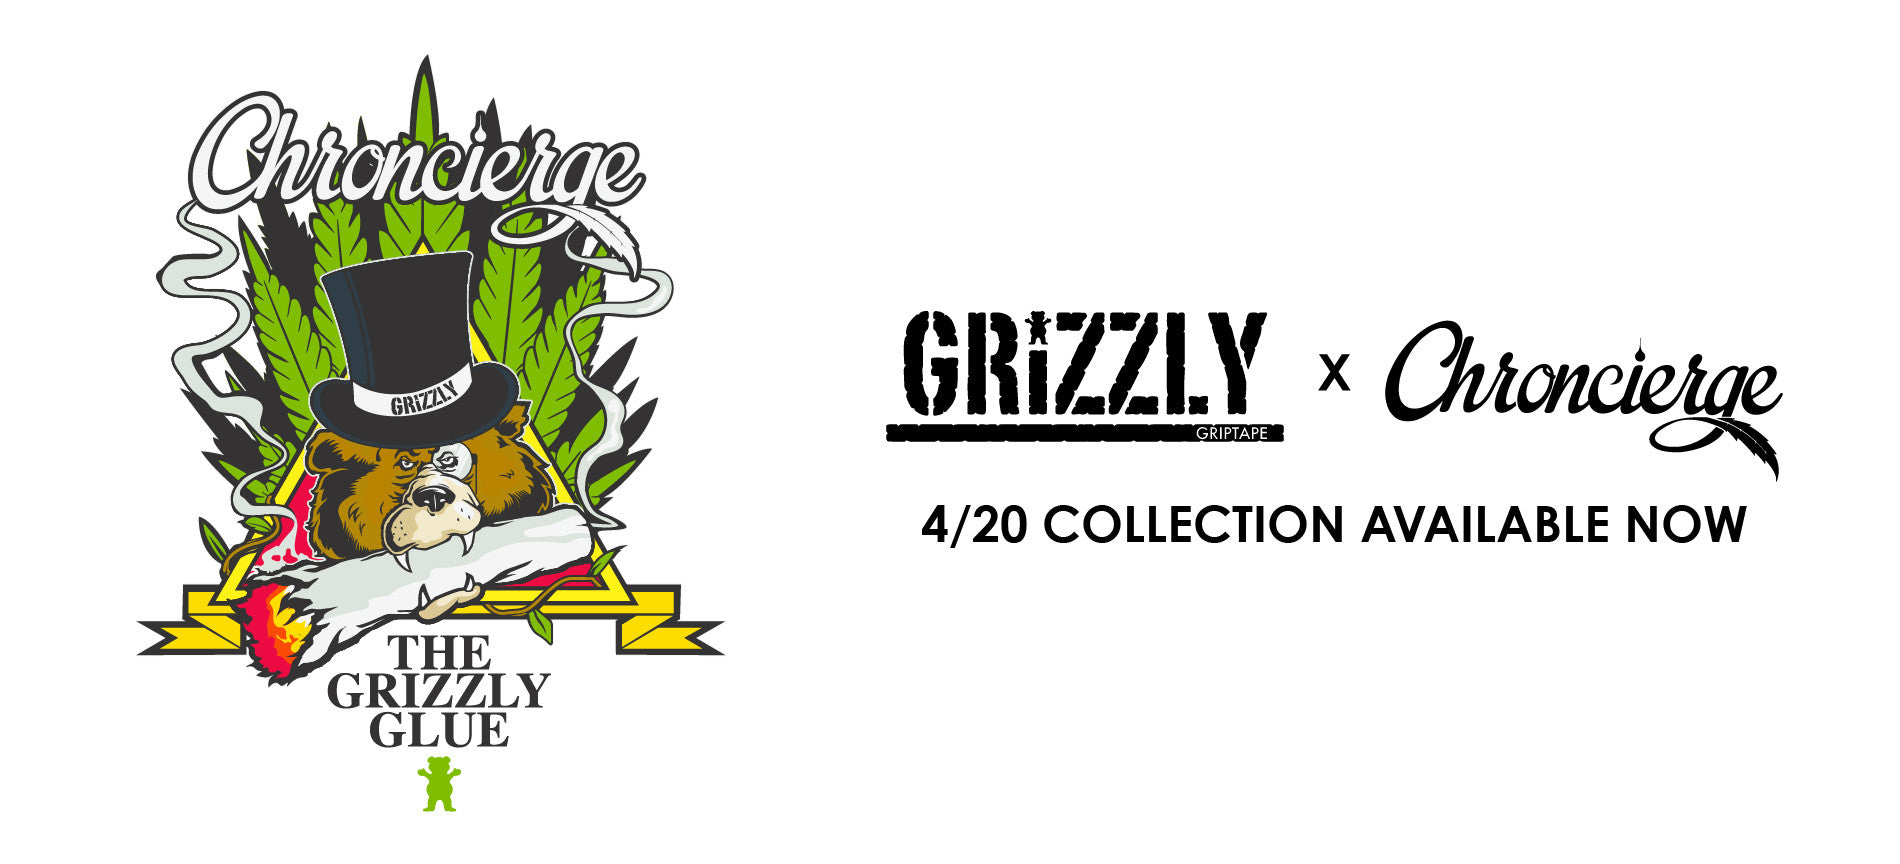 Grizzly Griptape x Chroncierge Presents The Grizzly Gule Marijuana